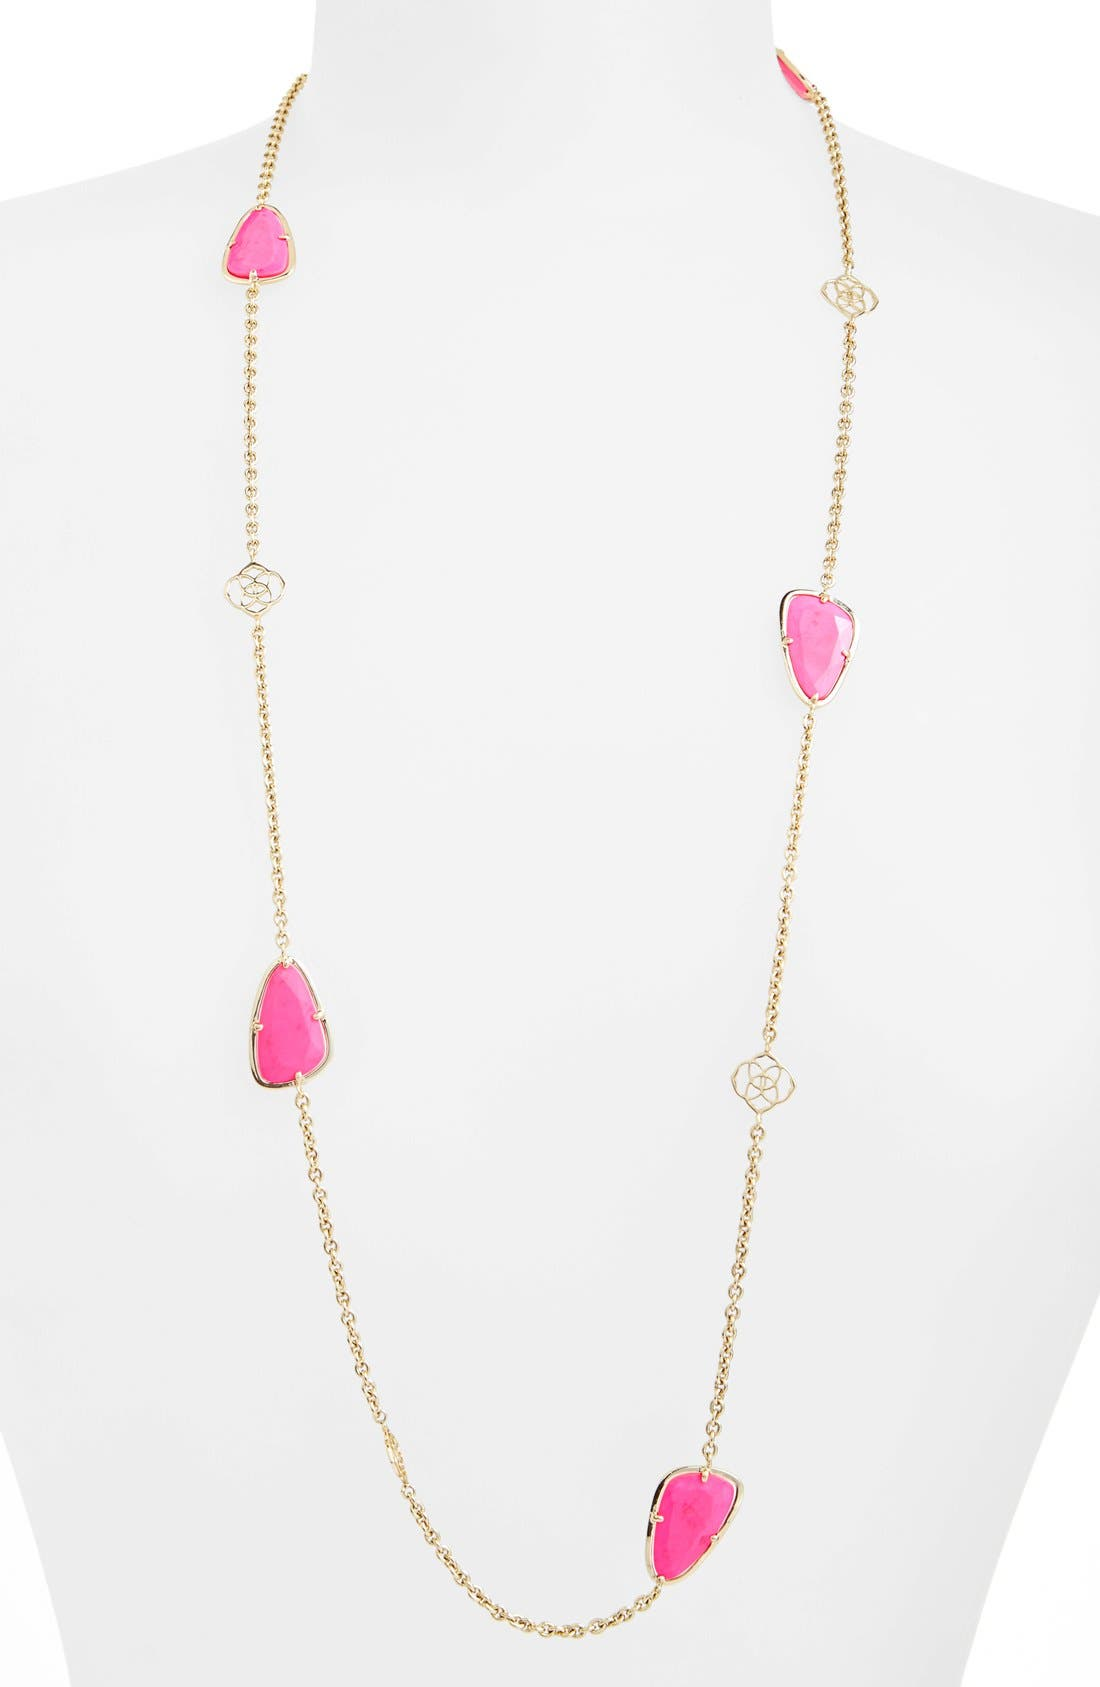 Main Image - Kendra Scott 'Kinley' Long Station Necklace (Nordstrom Exclusive)